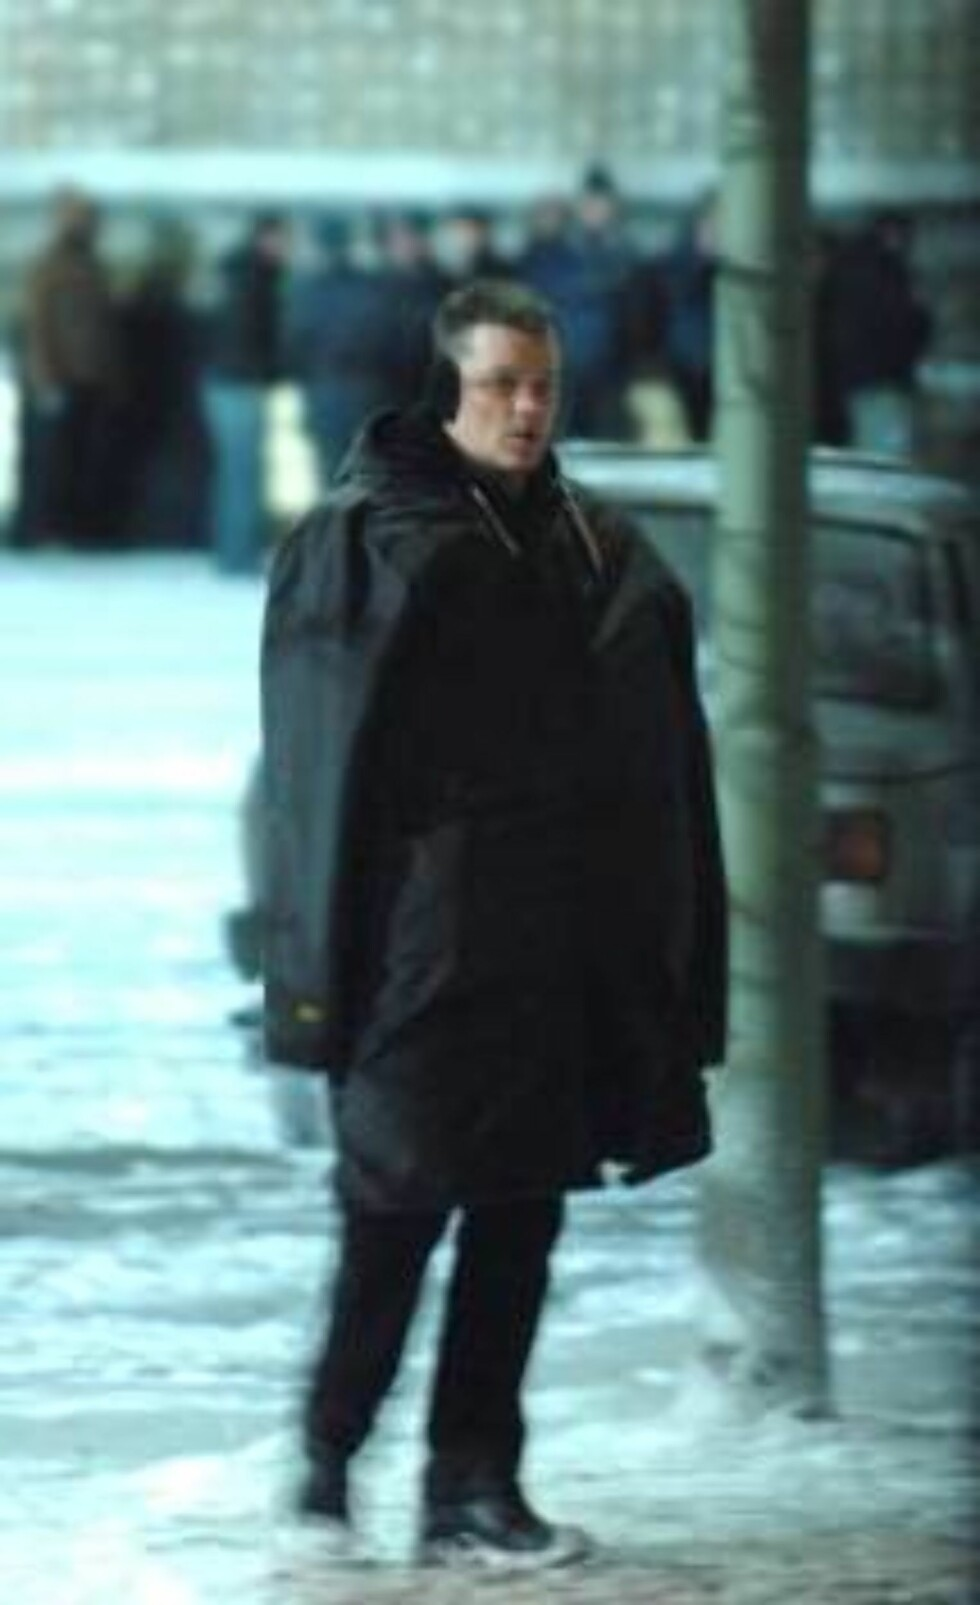 BERLIN 2007-01-29  ***NORWAY ONLY***  Matt Damon during shooting for his new movie THE BOURNE ULTIMATUM in Berlin. They are shooting on Berliner Alexanderplatz. This is an very famous place in Germany's main town. There they made russian dekoration , beca Foto: STELLA PICTURES